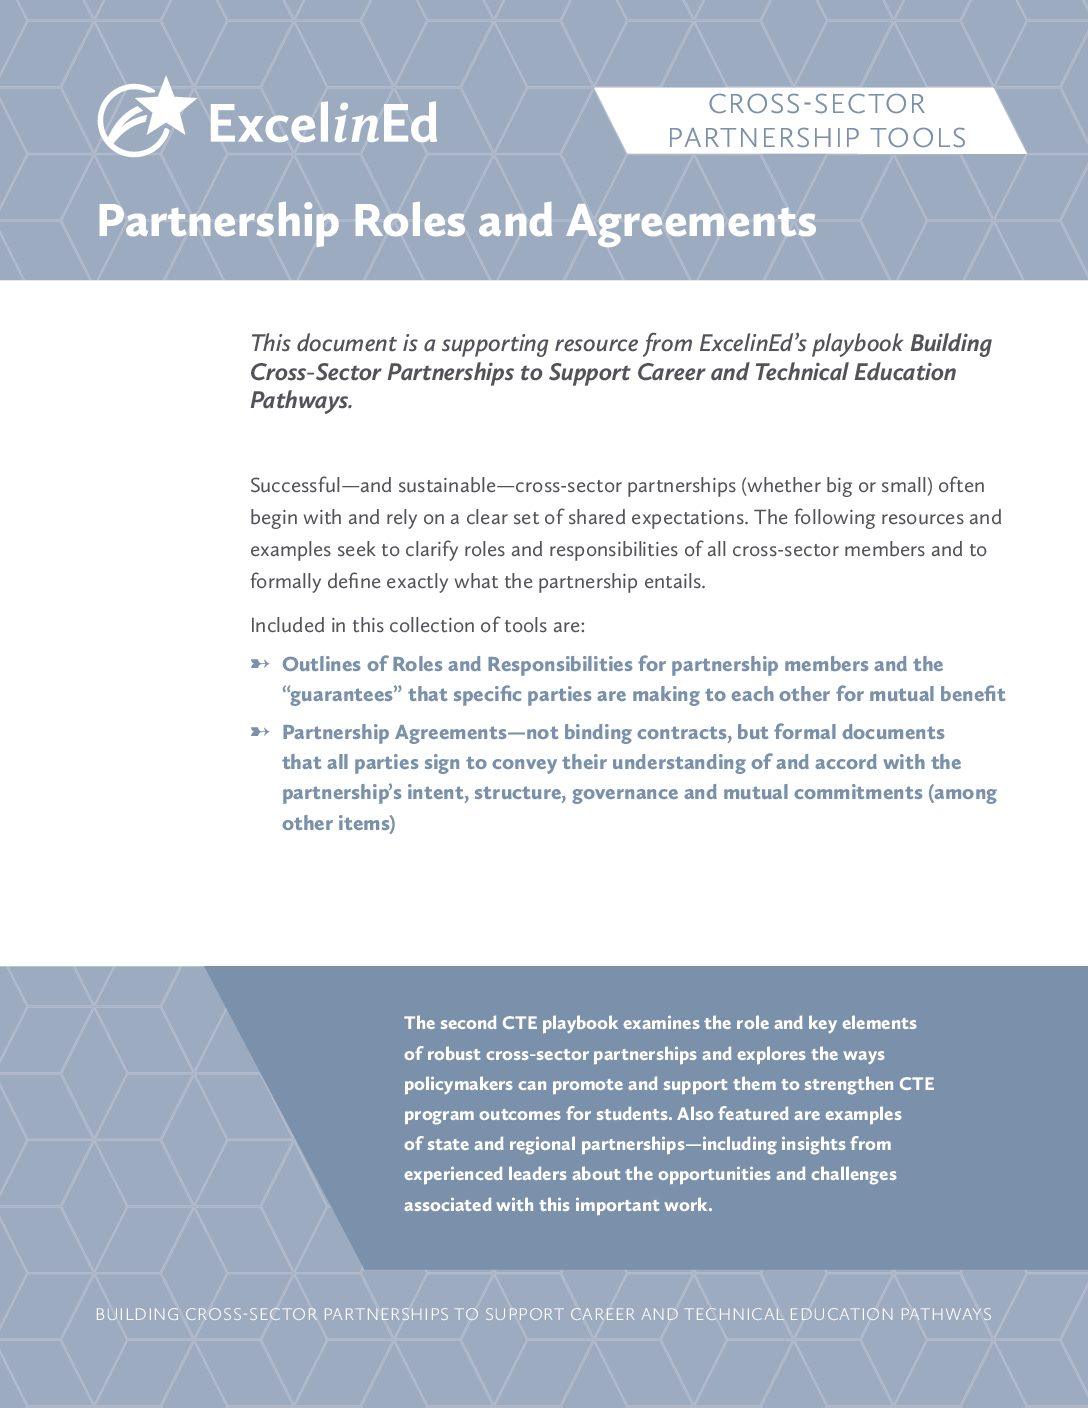 Playbook 2: Cross-Sector Partnership Tools &#8211; Partnership Roles and Agreements &#8211; May 2018>									 									</a> 									<a href=